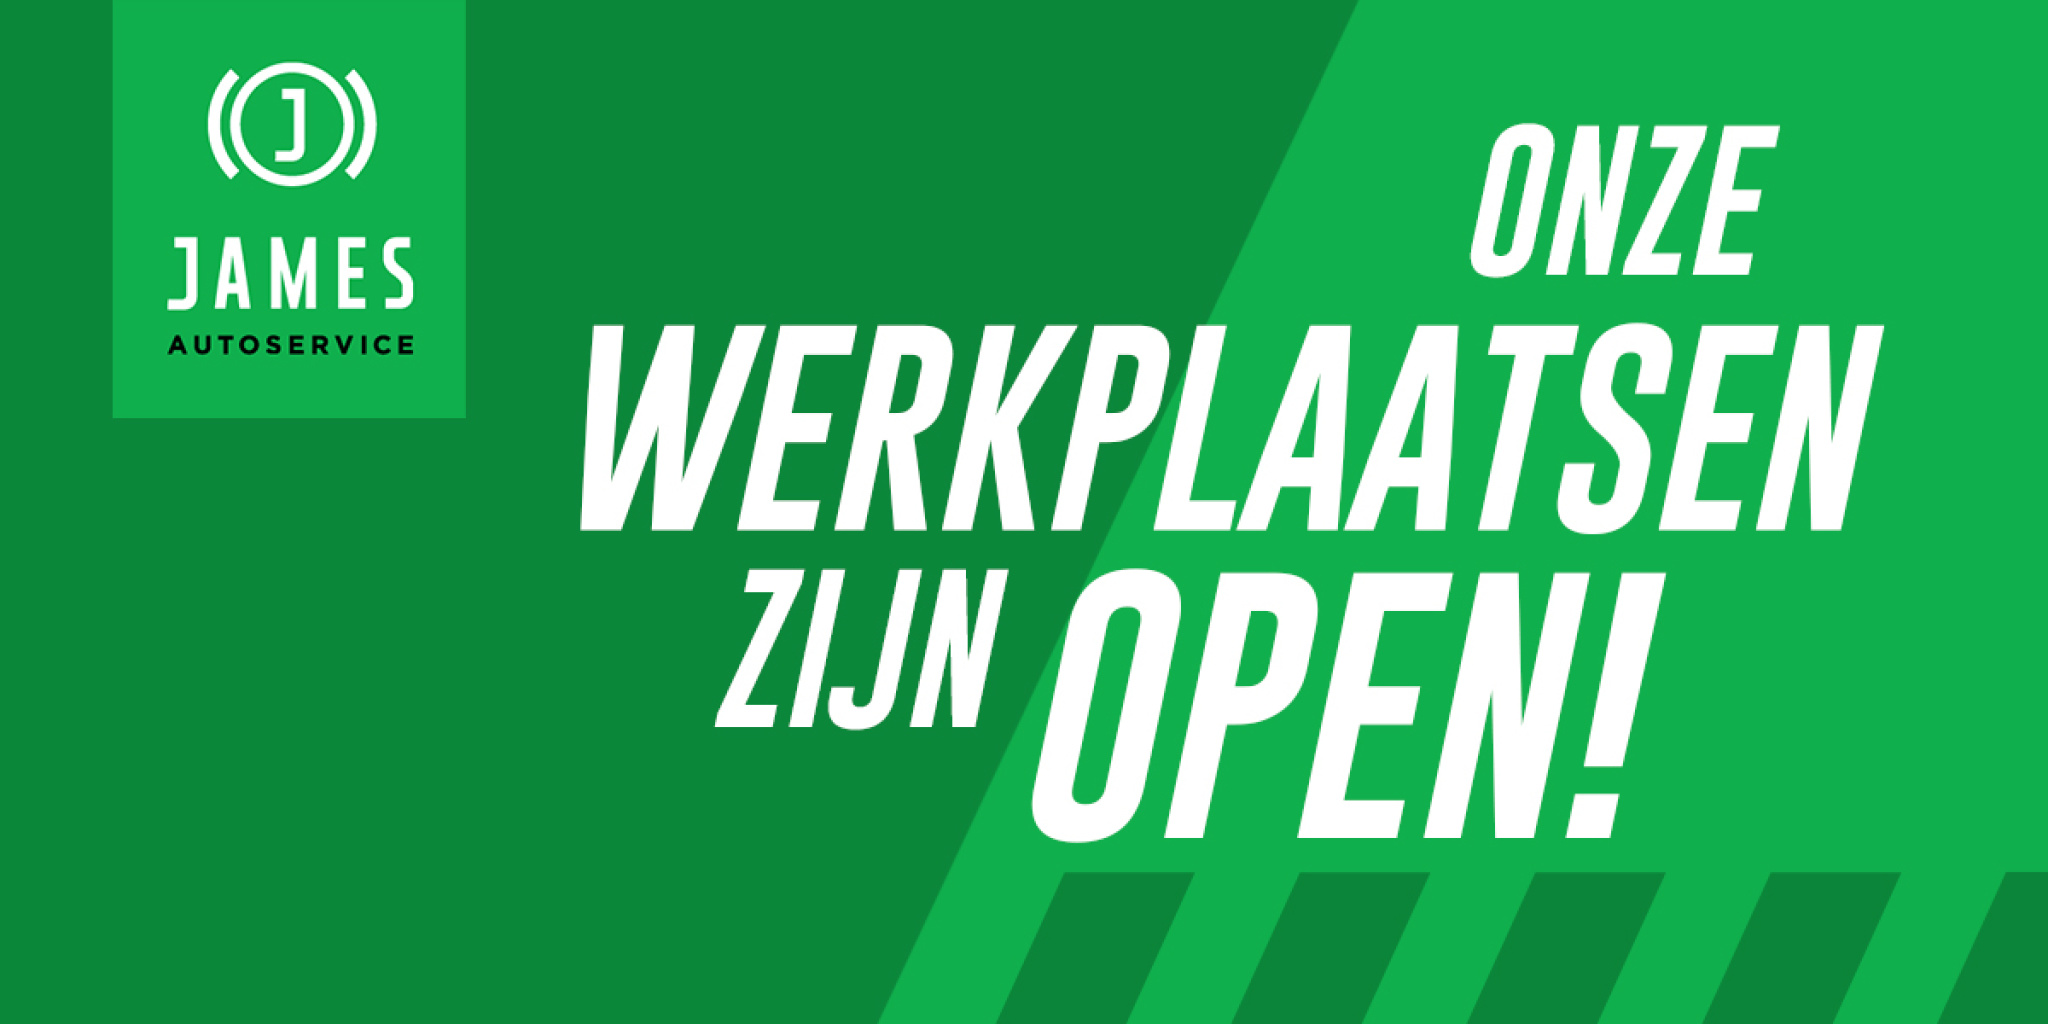 Werkplaats Auto Jawes Ede, James Autoservice open!-2020-12-16 10:53:13